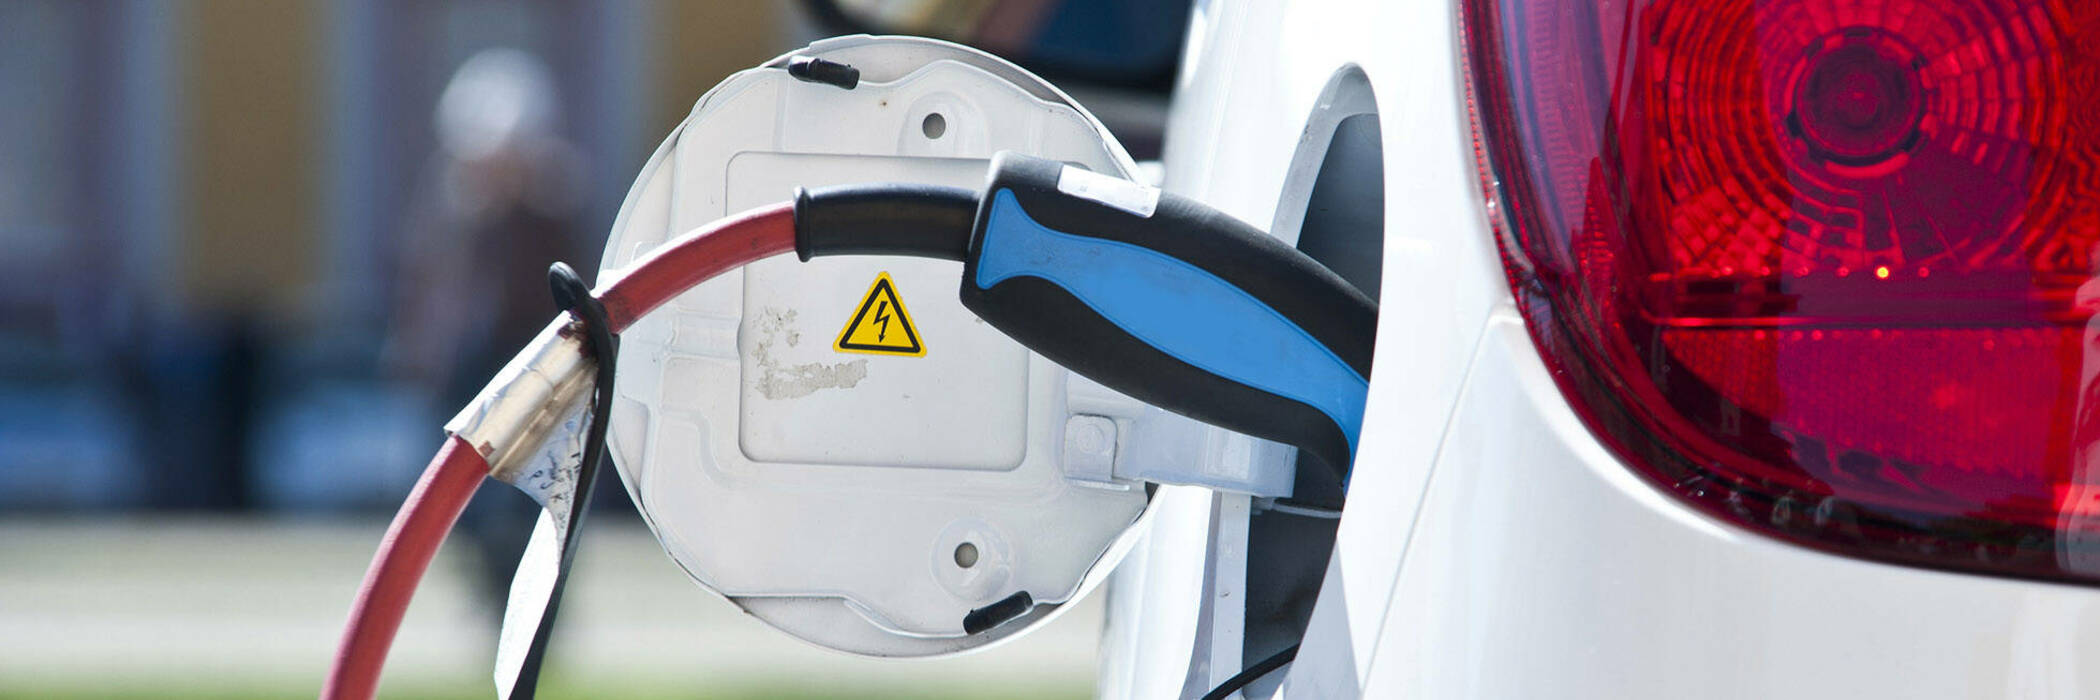 16jul a guide to electric vehicles hero